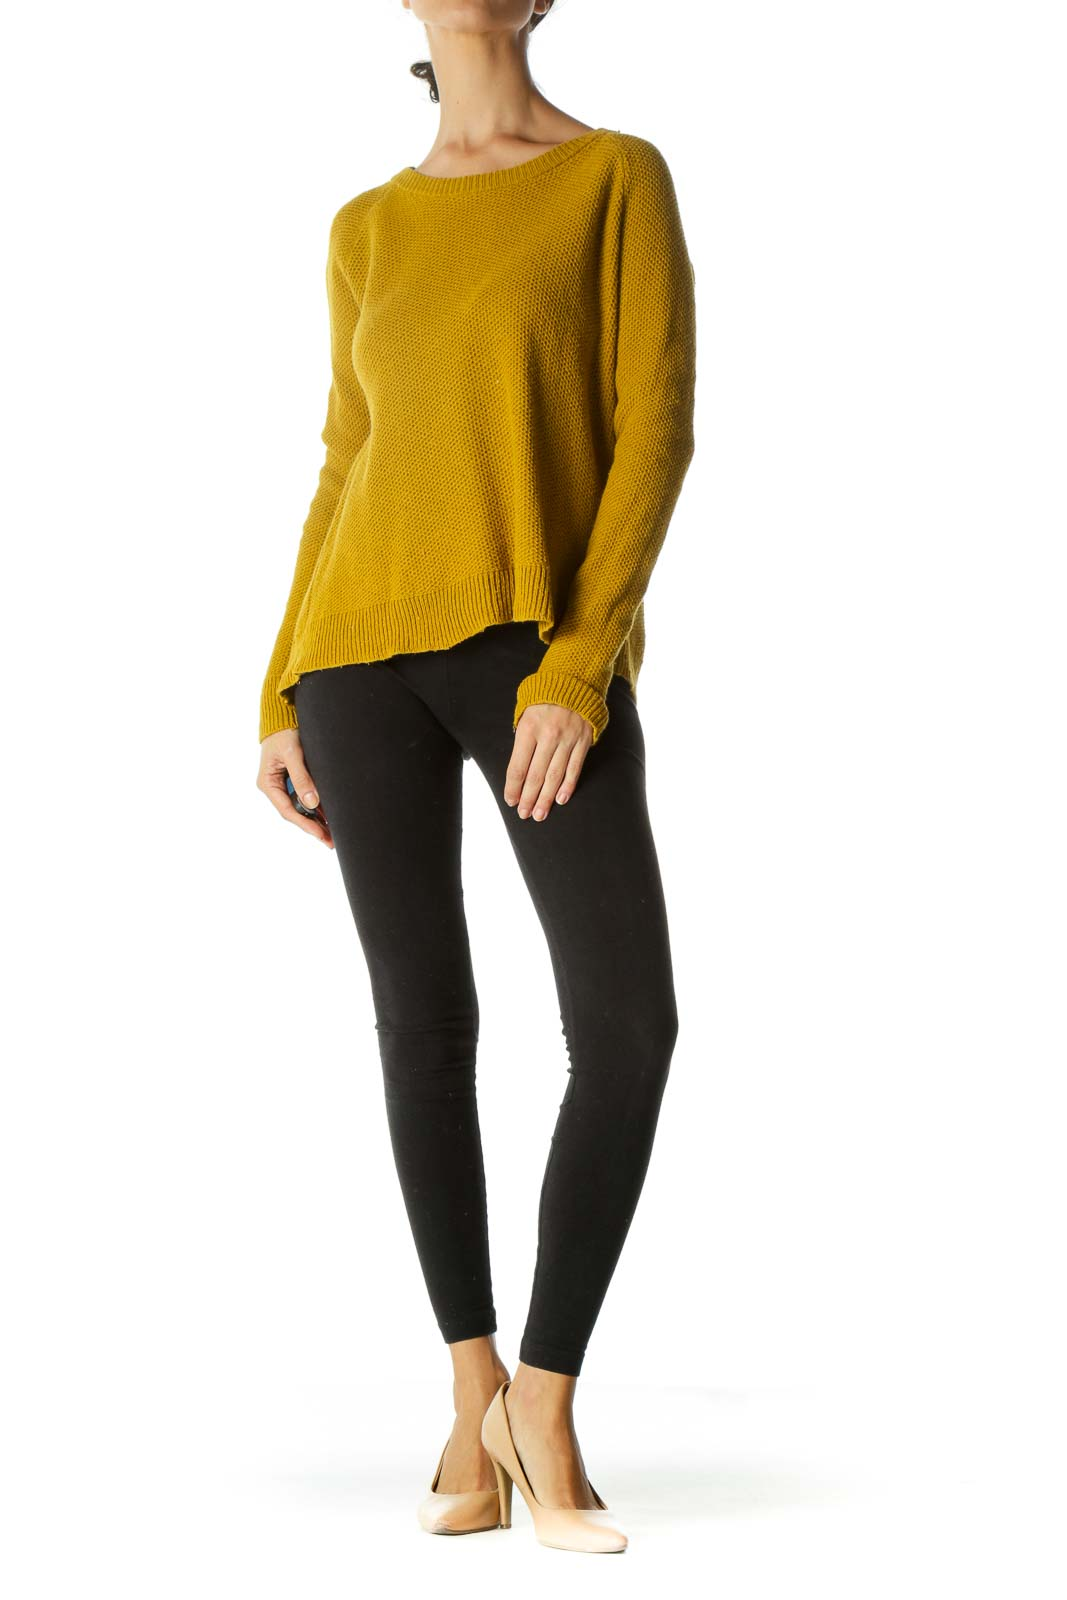 Mustard Yellow Round Neck Knit Sweater